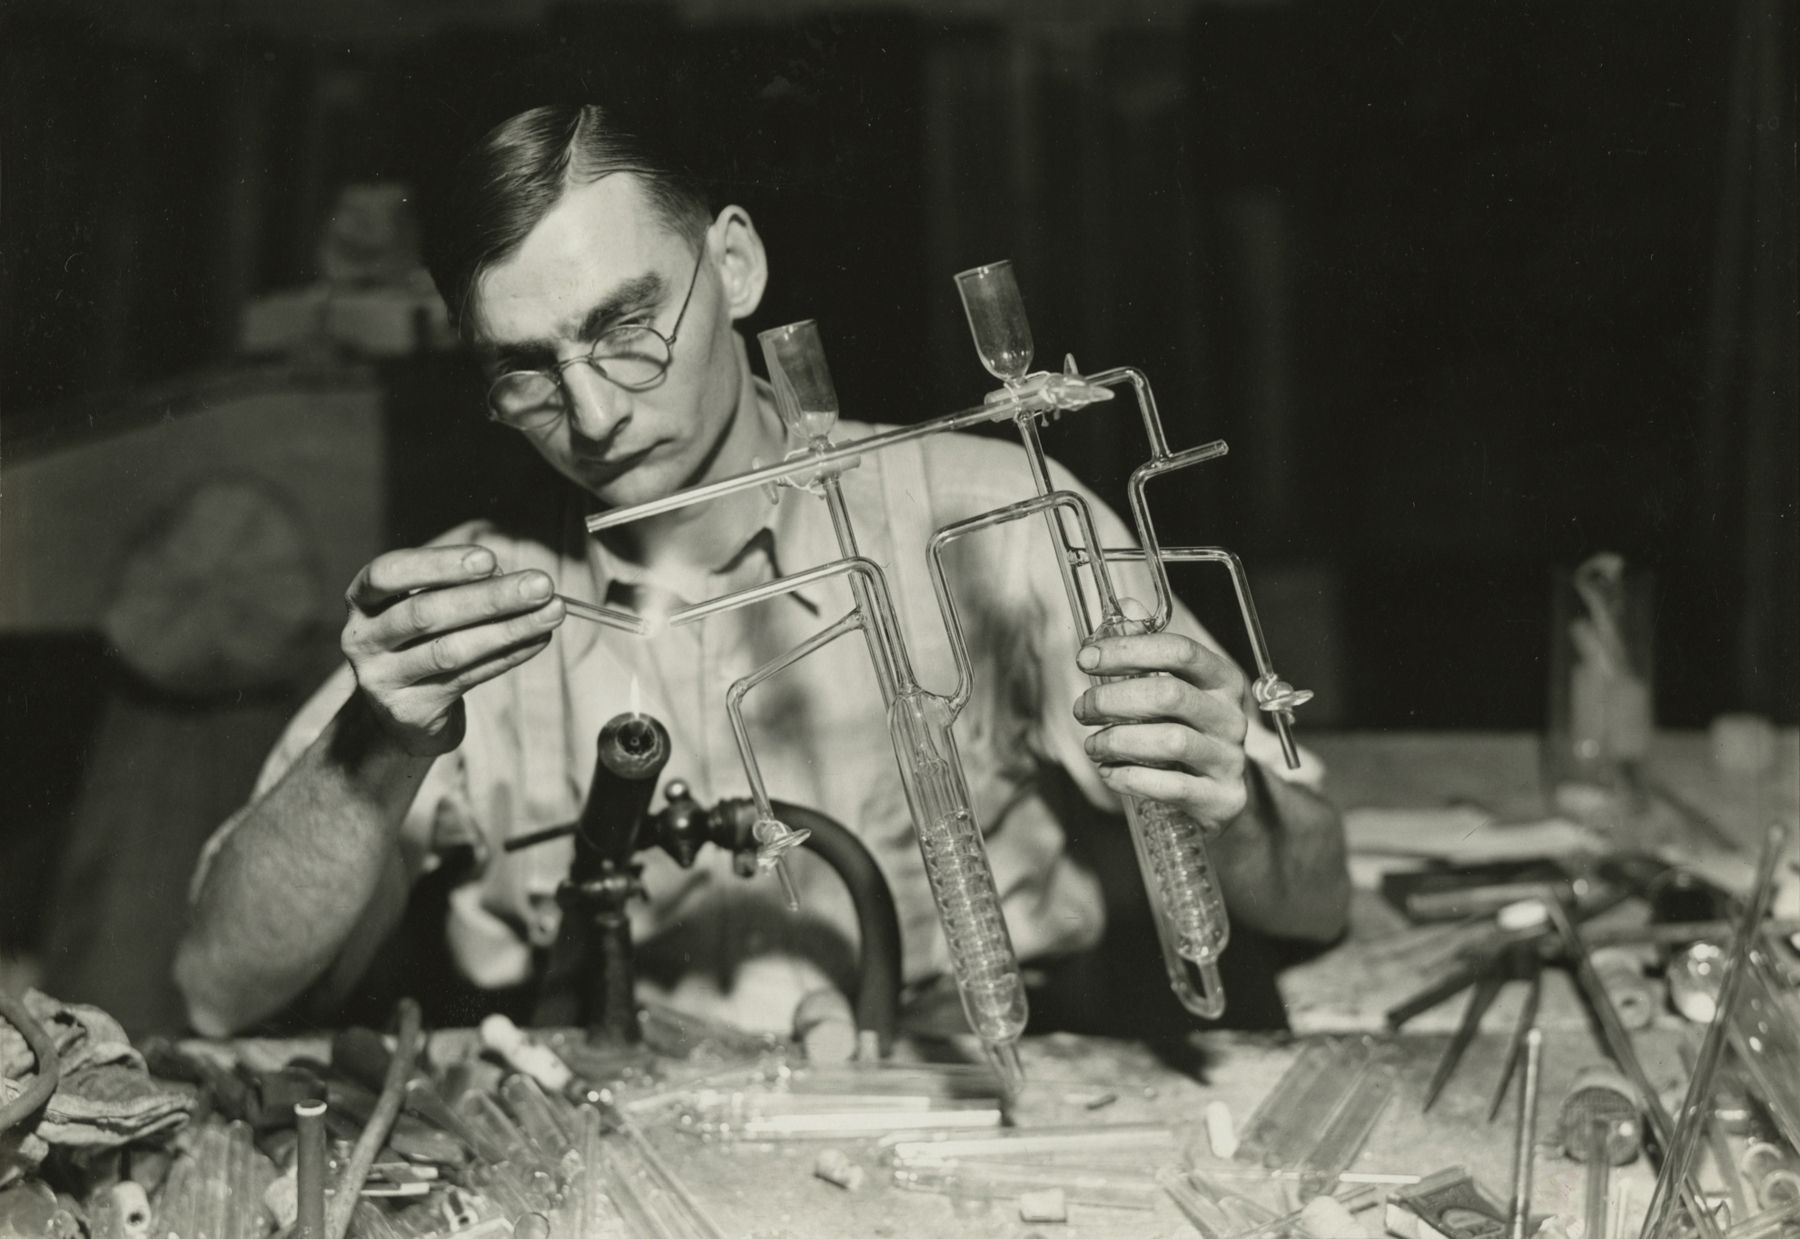 Glass worker finishing the end of a sulphur determinator. Here the worker is smoothing off the end of the tubing after heating it over the glass flame. L.G. Nestor Co., Millville, NJ, March 26, 1937  Gelatin silver print; printed c.1937